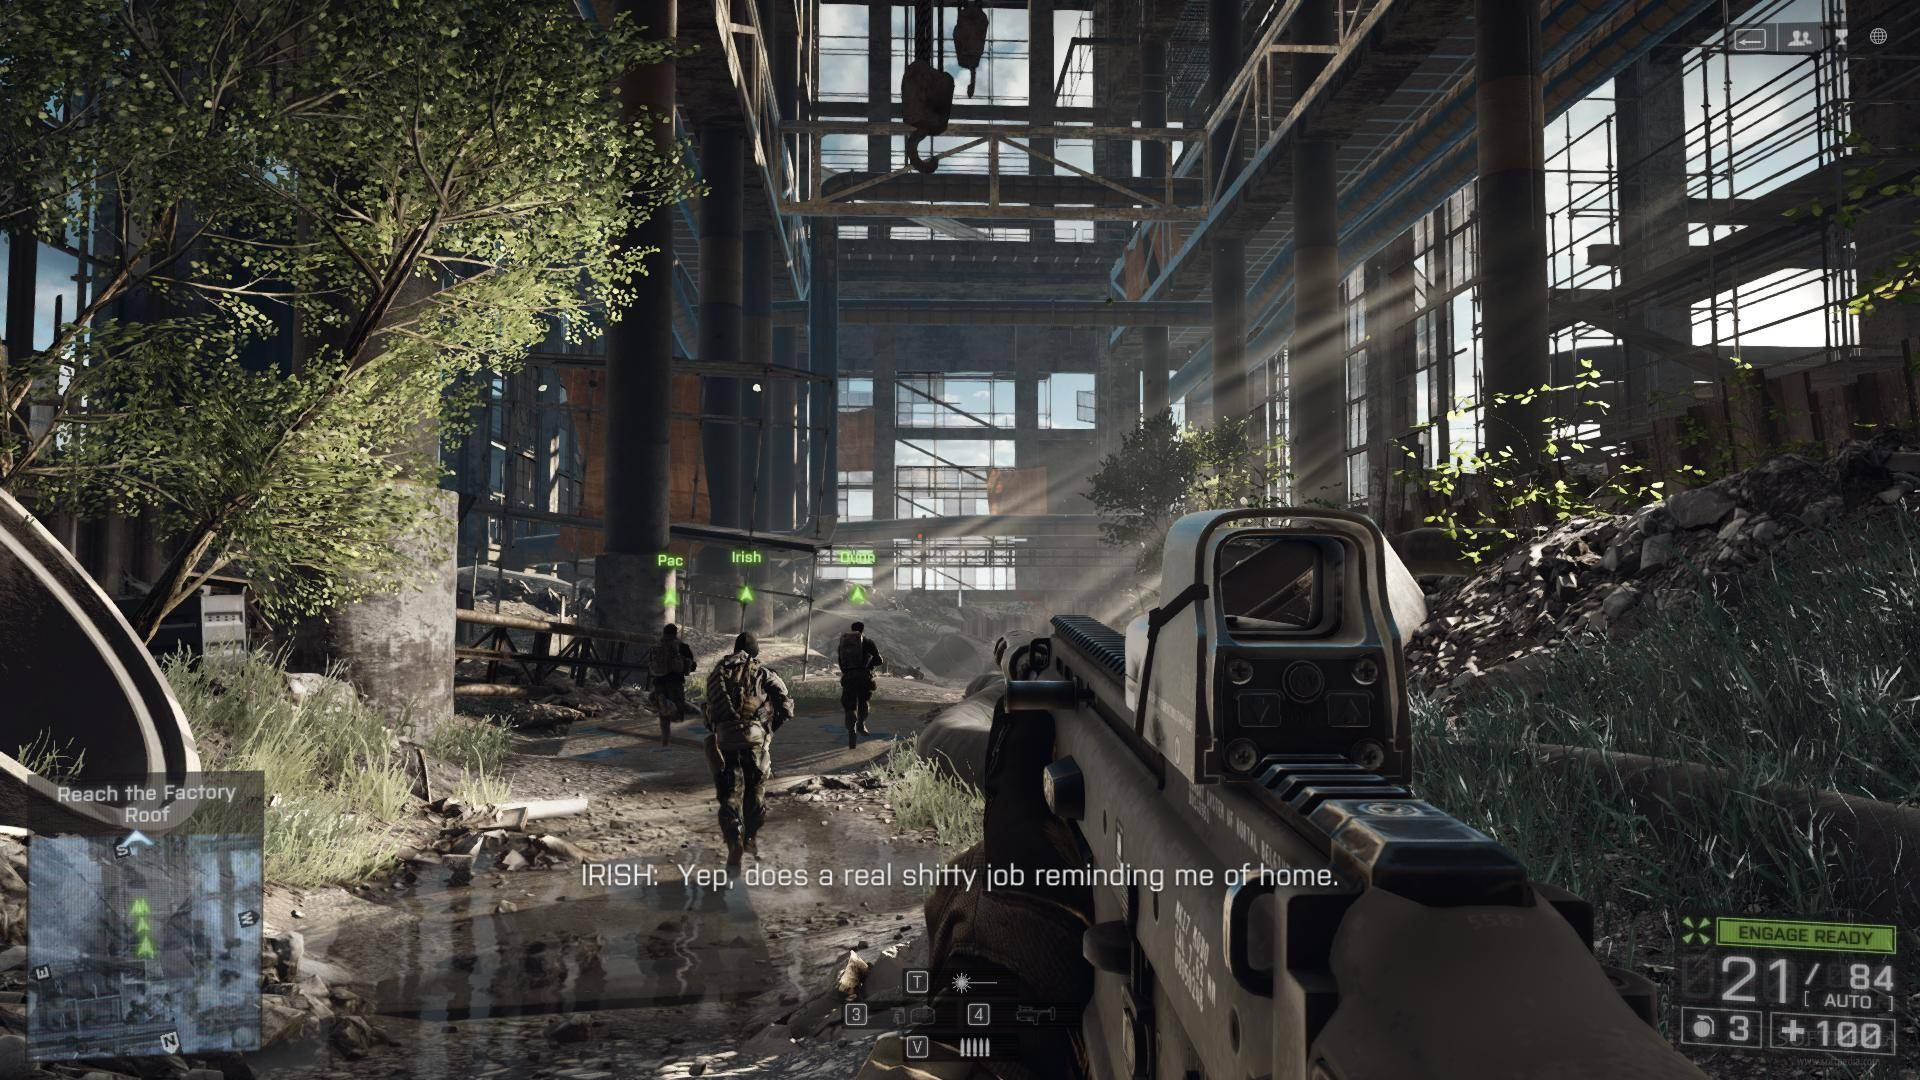 Download Now Battlefield 4 PS3 Update to Solve Crashes and Improve